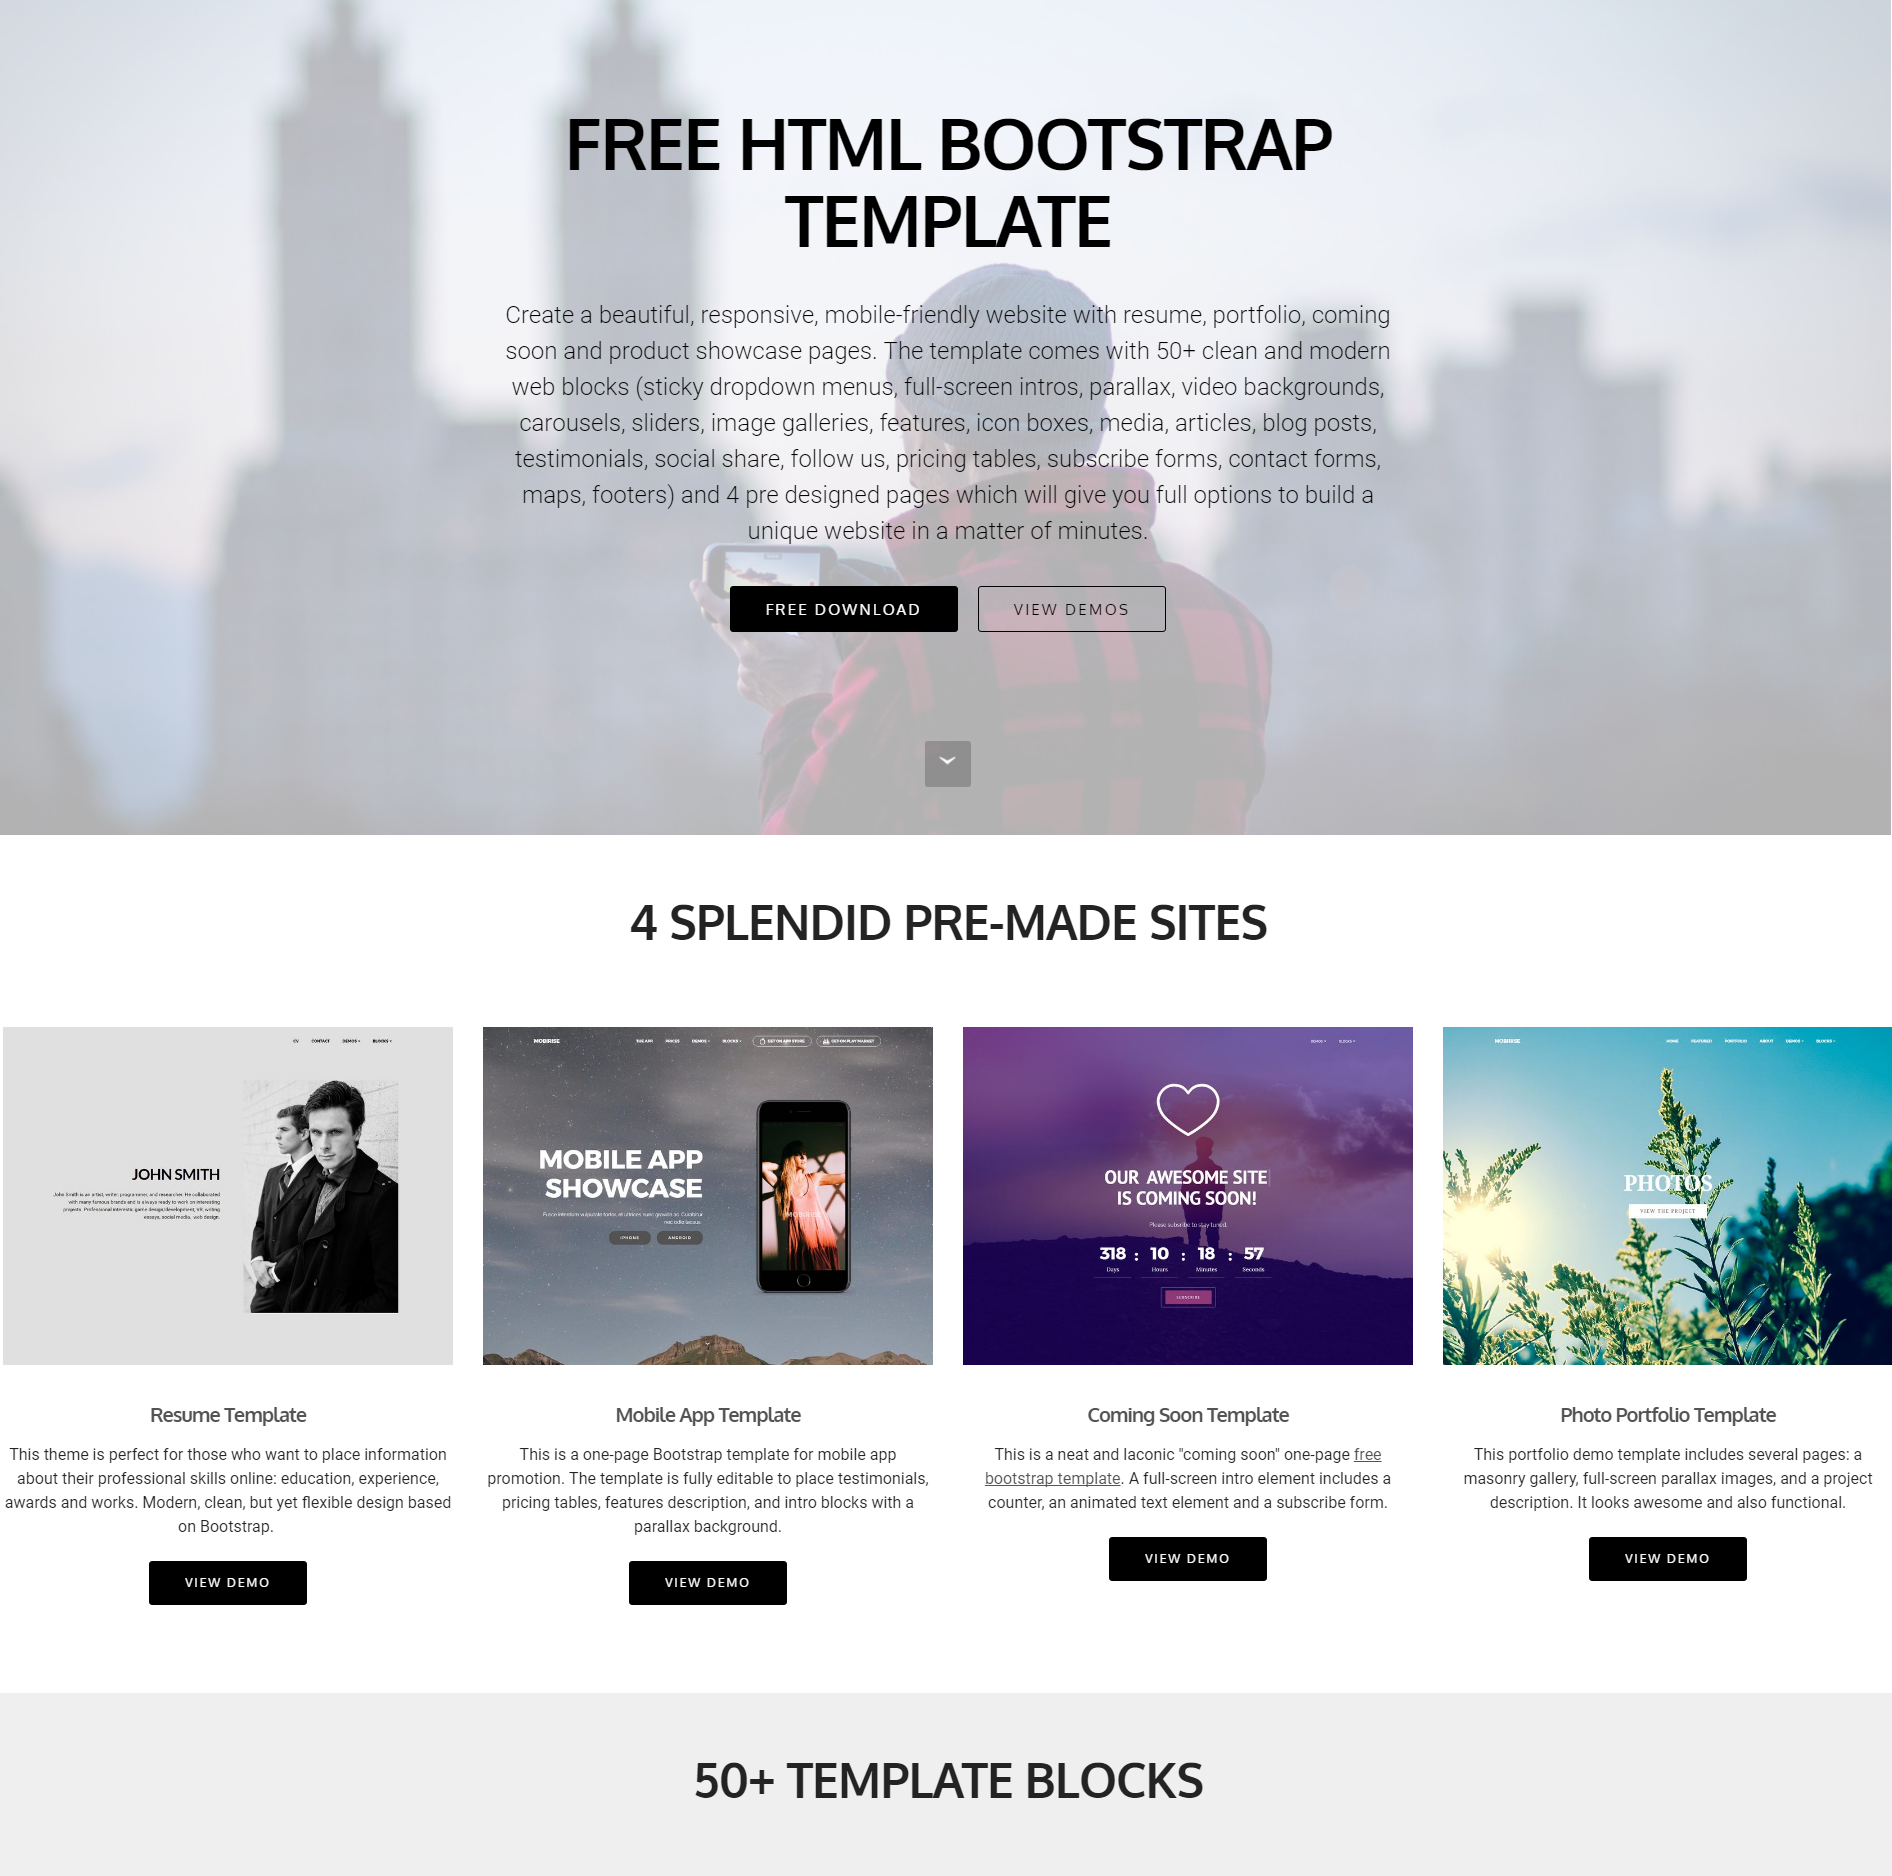 35+ Beautiful Free Bootstrap Templates 2019